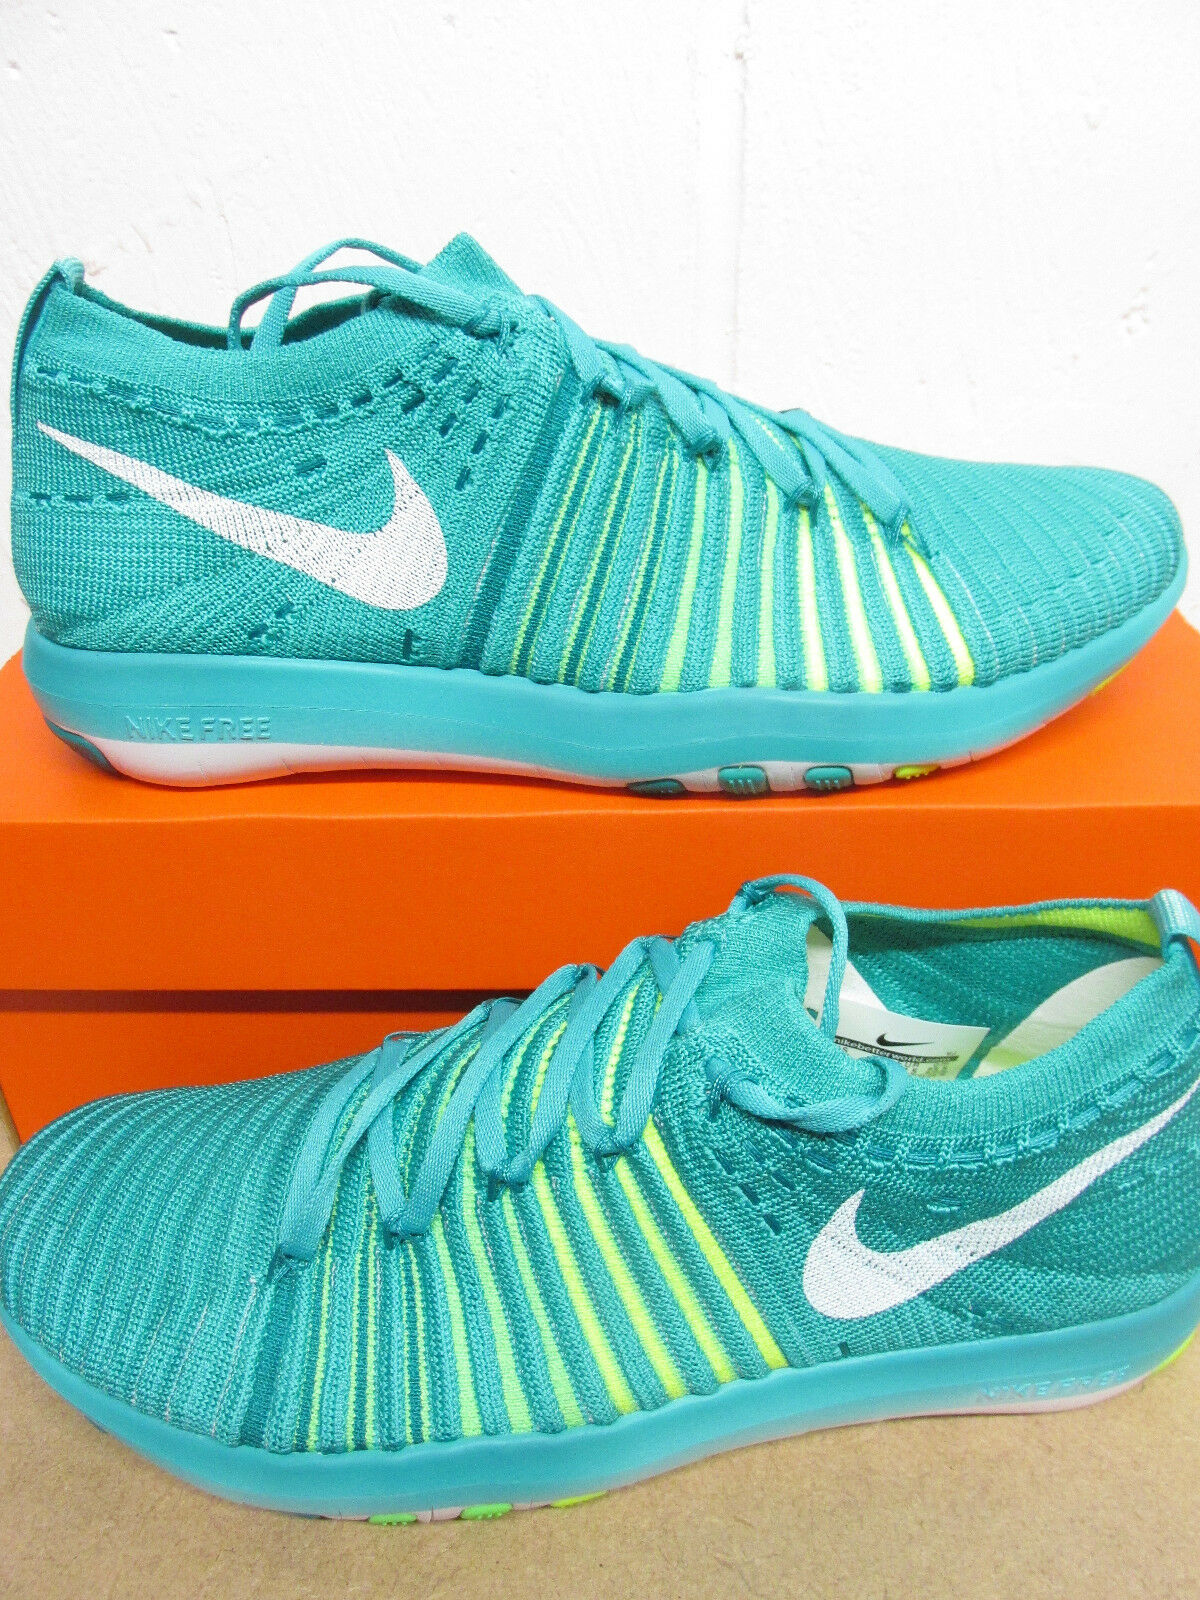 Nike Free Transform Flyknit Femme Baskets fonctionnement Trainers 833410 301 Baskets Femme chaussures a51ed2